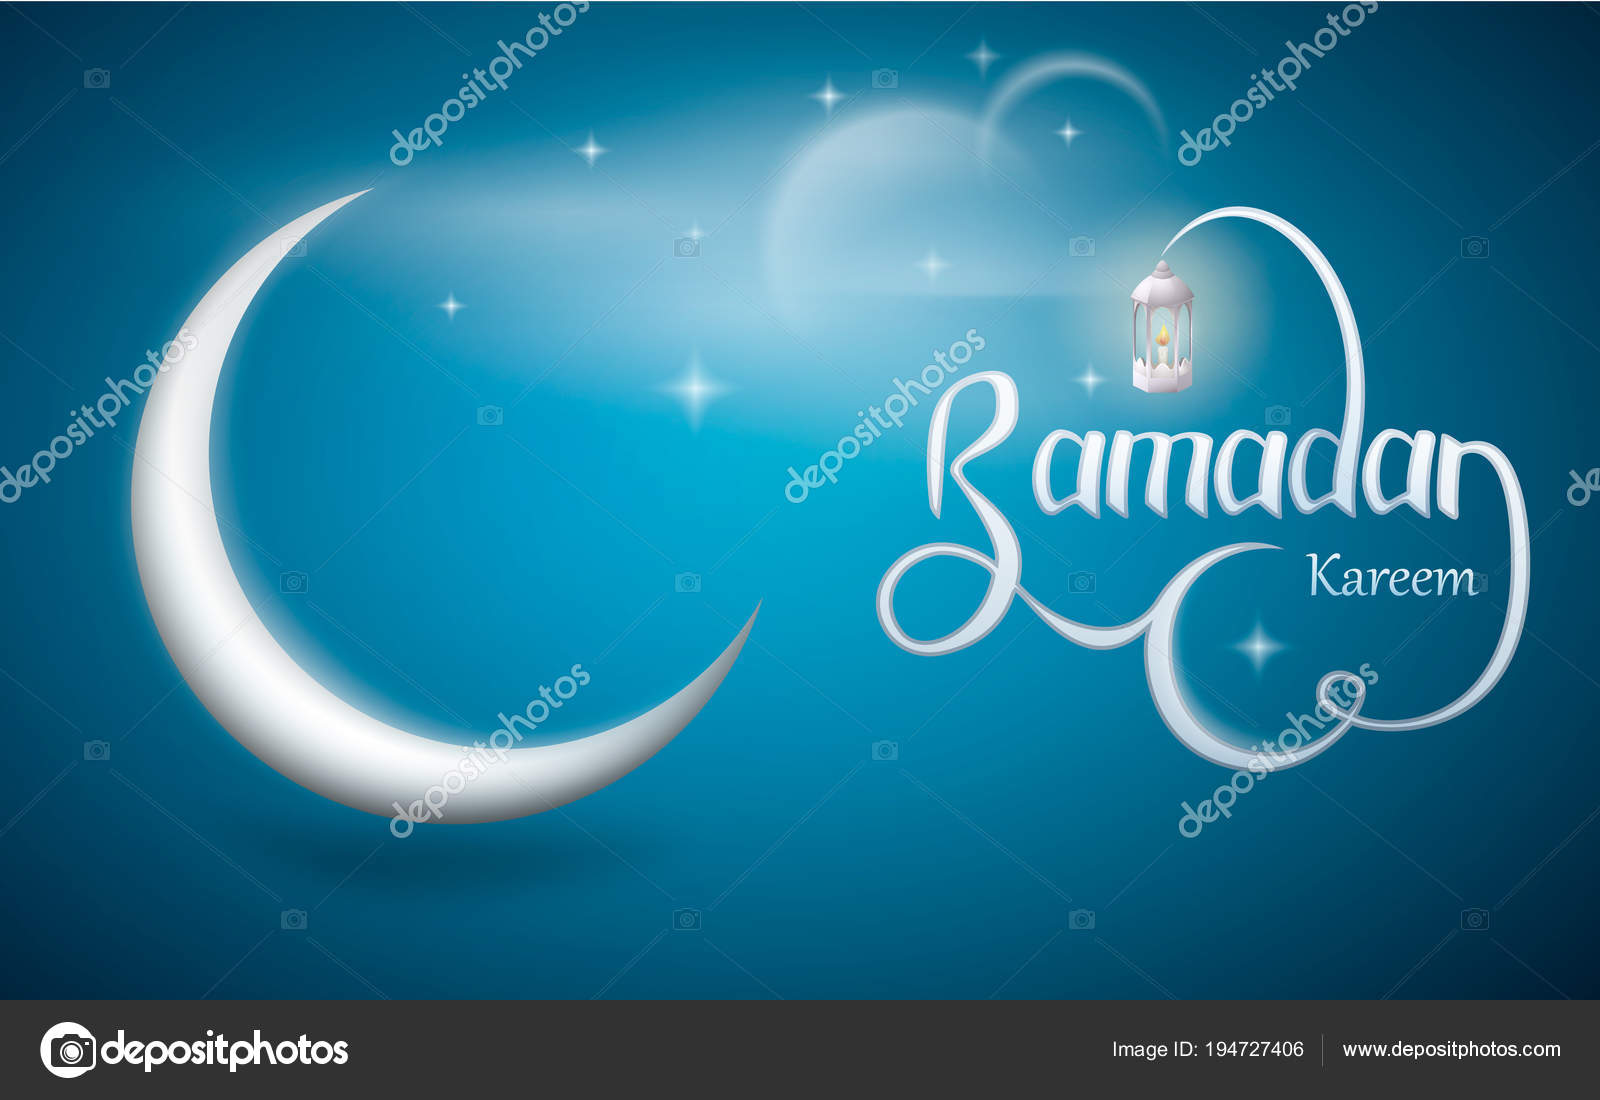 Ramadan kareem vector design with lantern and crescent moon. Wallpaper design on the occasion of